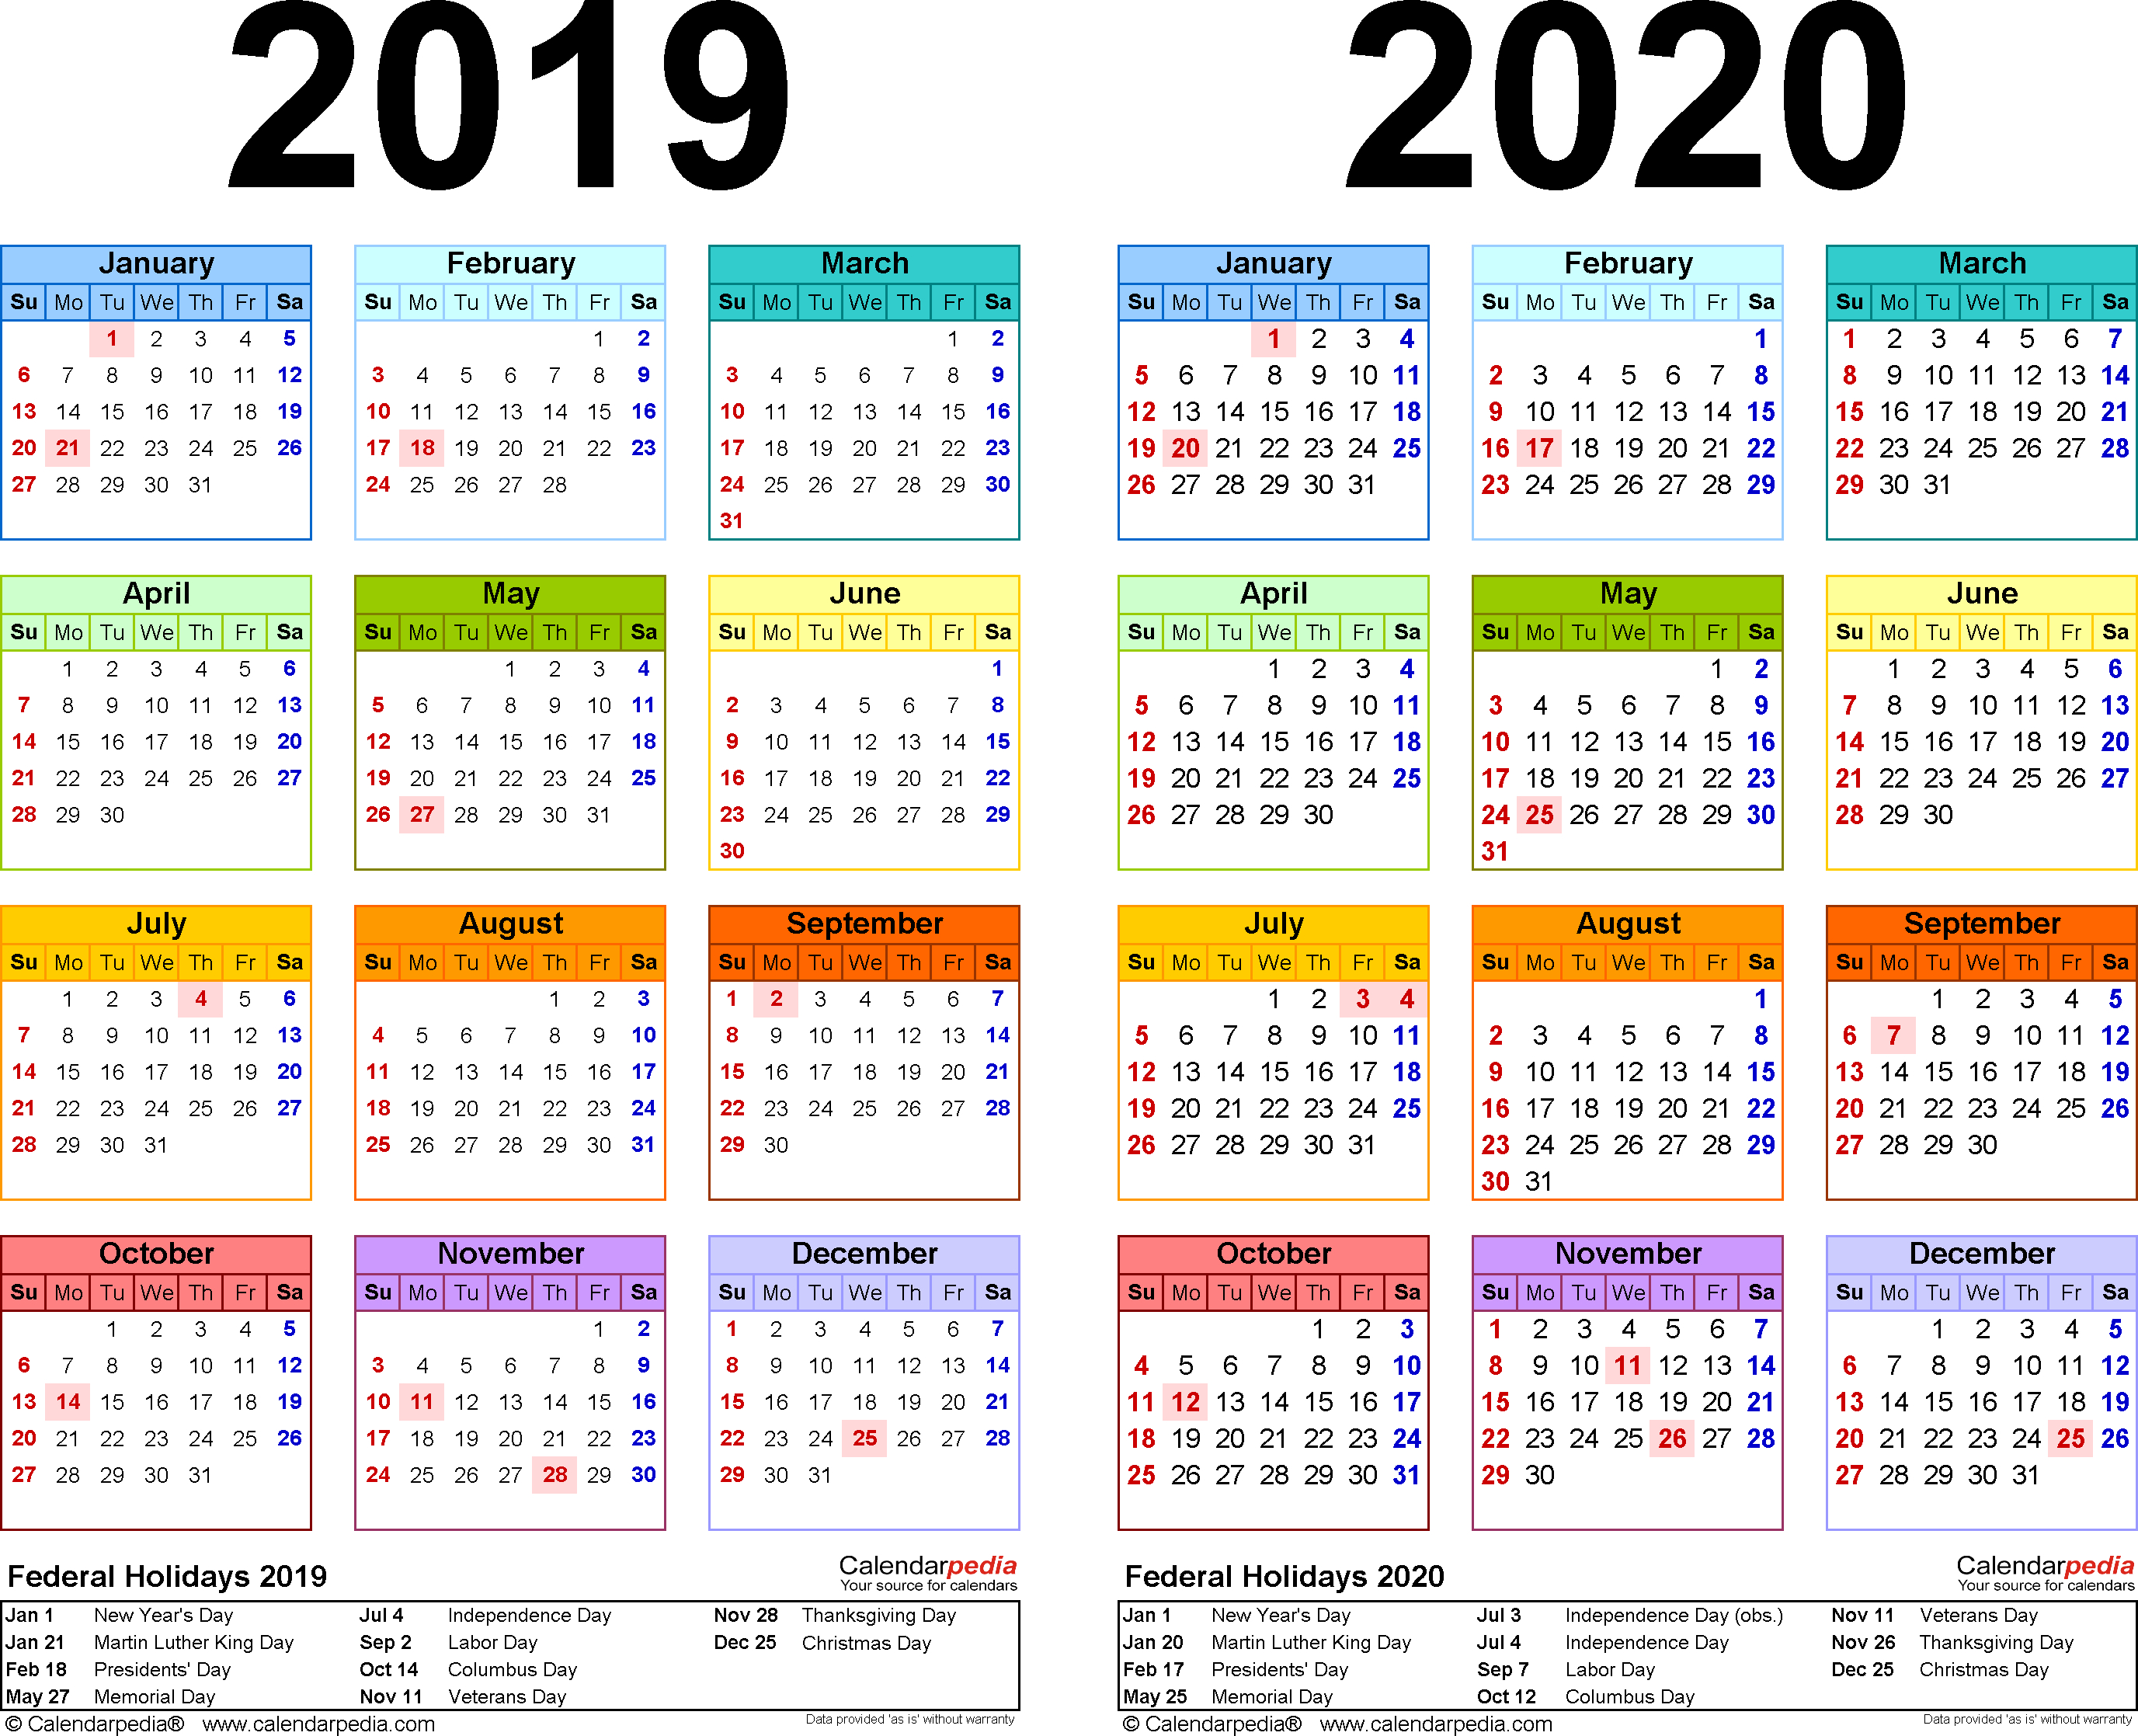 Printable Academic Calendar 2020 16  Bolan.horizonconsulting.co for Uc Berkeley 2020-2020 Calendar